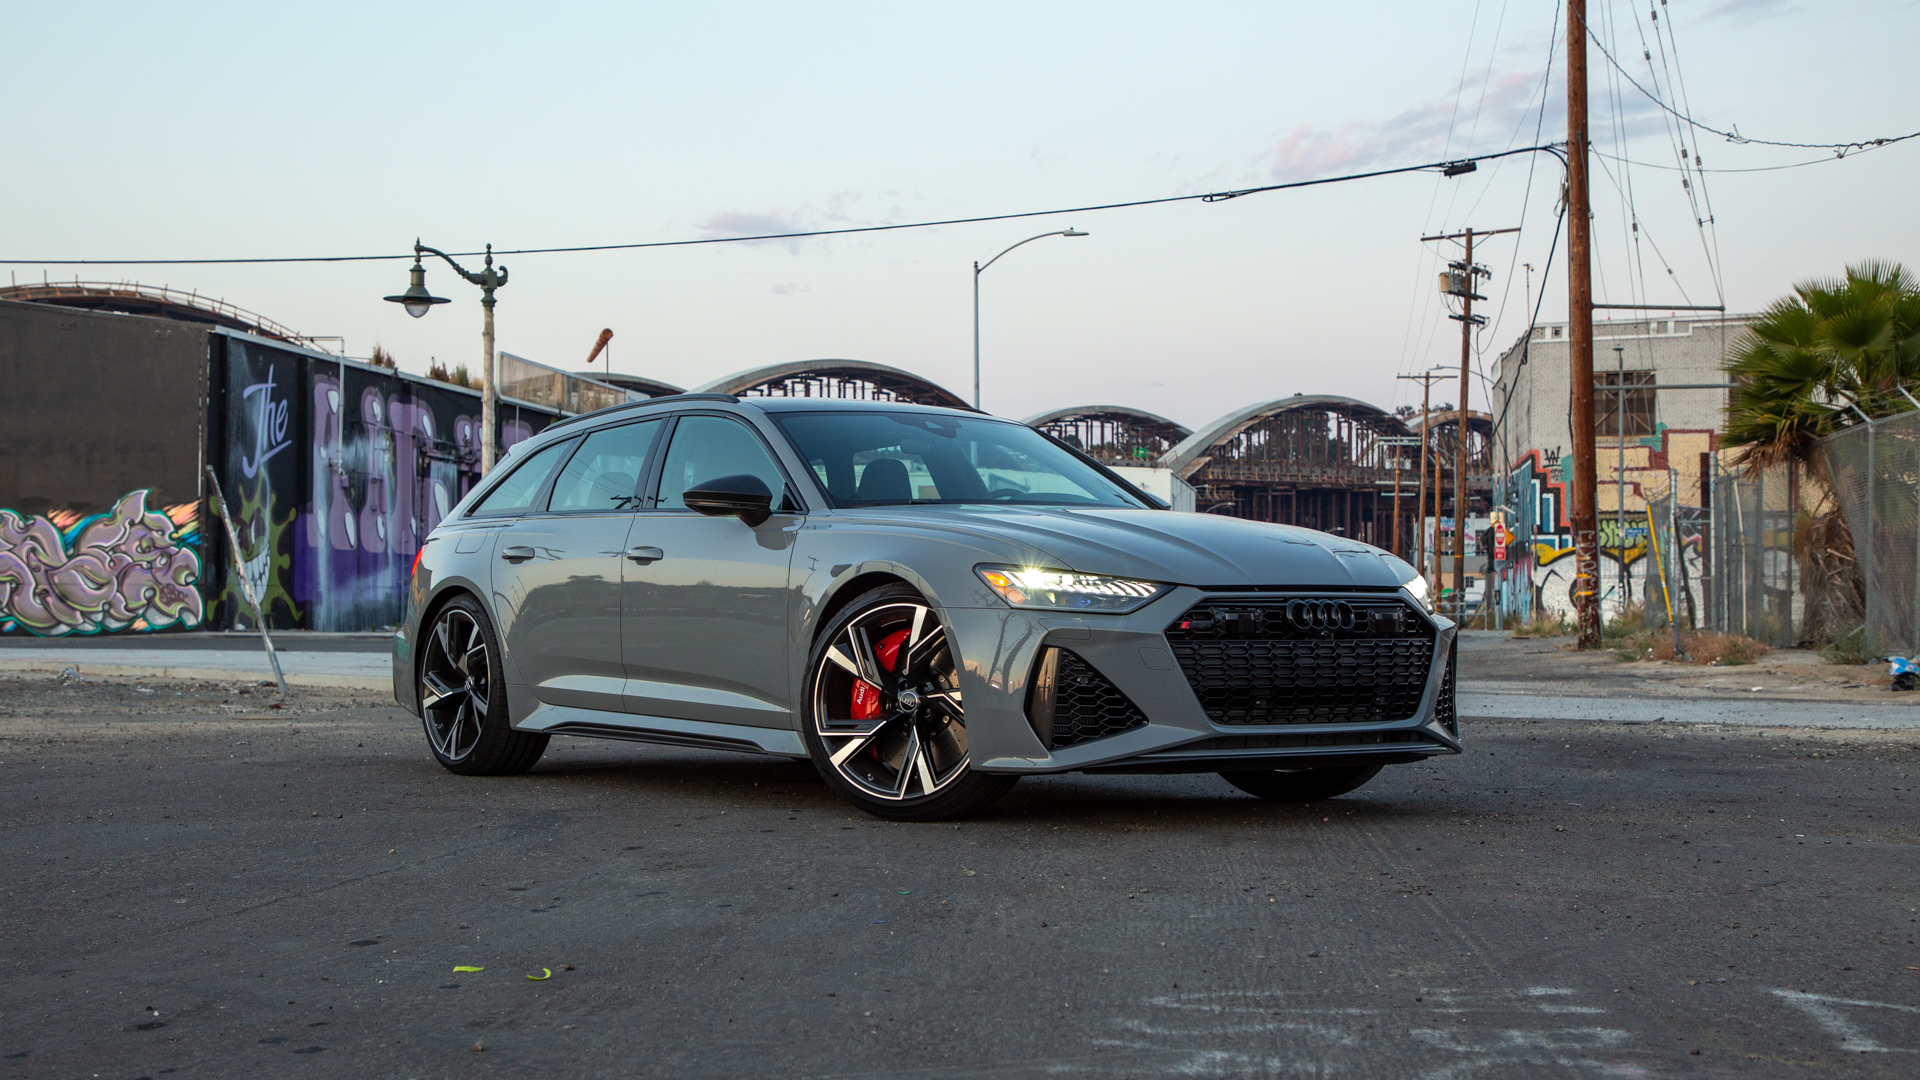 First drive review: 2021 Audi RS 6 Avant blends massive performance and mass appeal